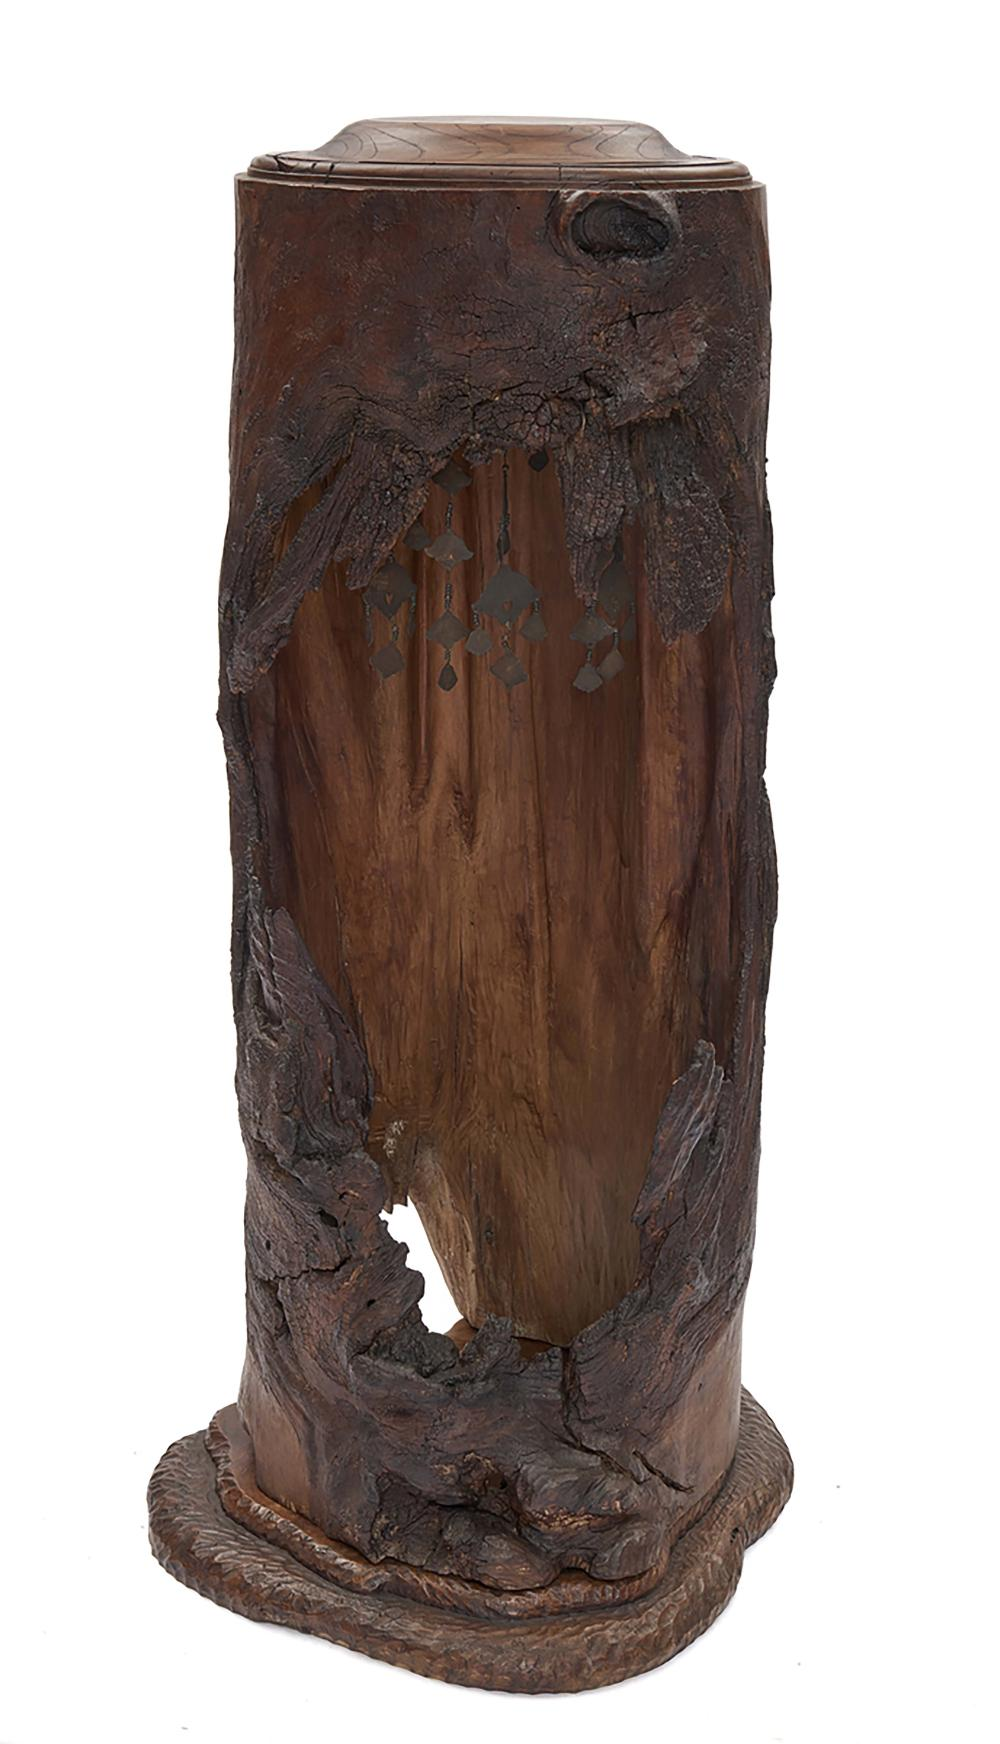 Hollowed out wooden trunk on a plinth used as a kind of shrine in which a s